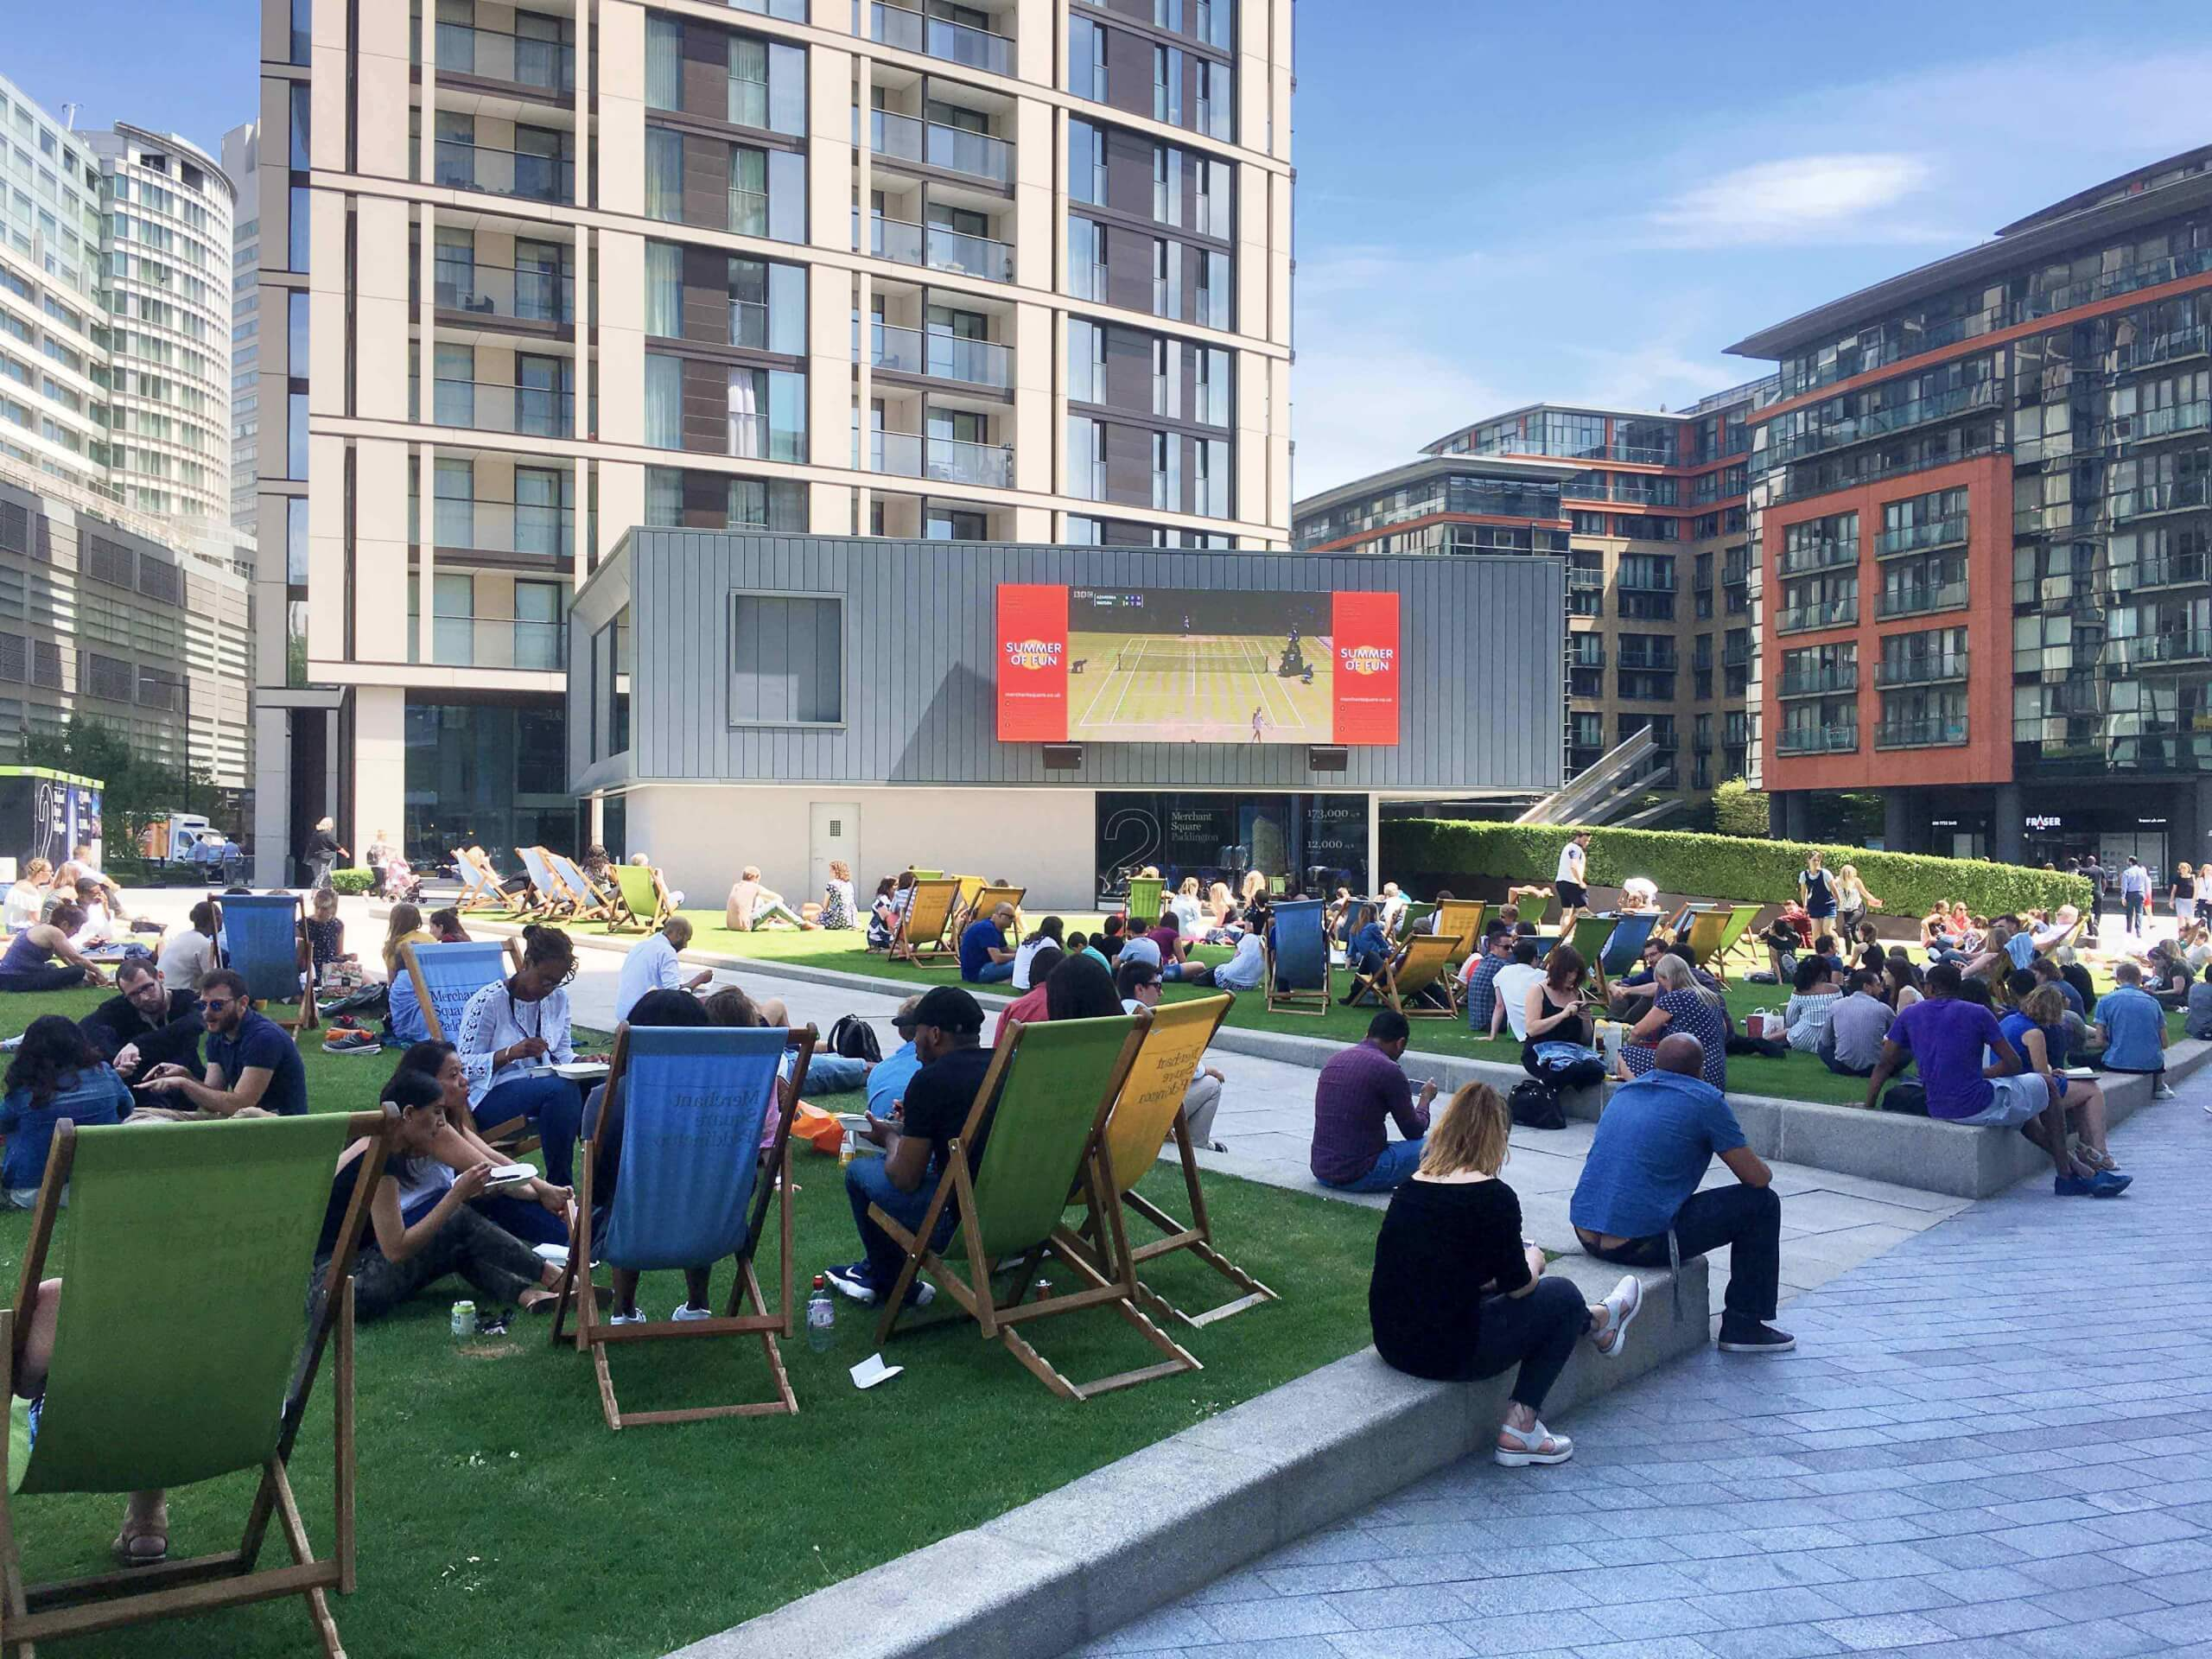 where to watch Wimbledon in London outside, where to watch Wimbledon in London 2018, where to watch Wimbledon in London, where to watch Wimbledon London, Wimbledon screenings in London, where to watch Wimbledon outside in London